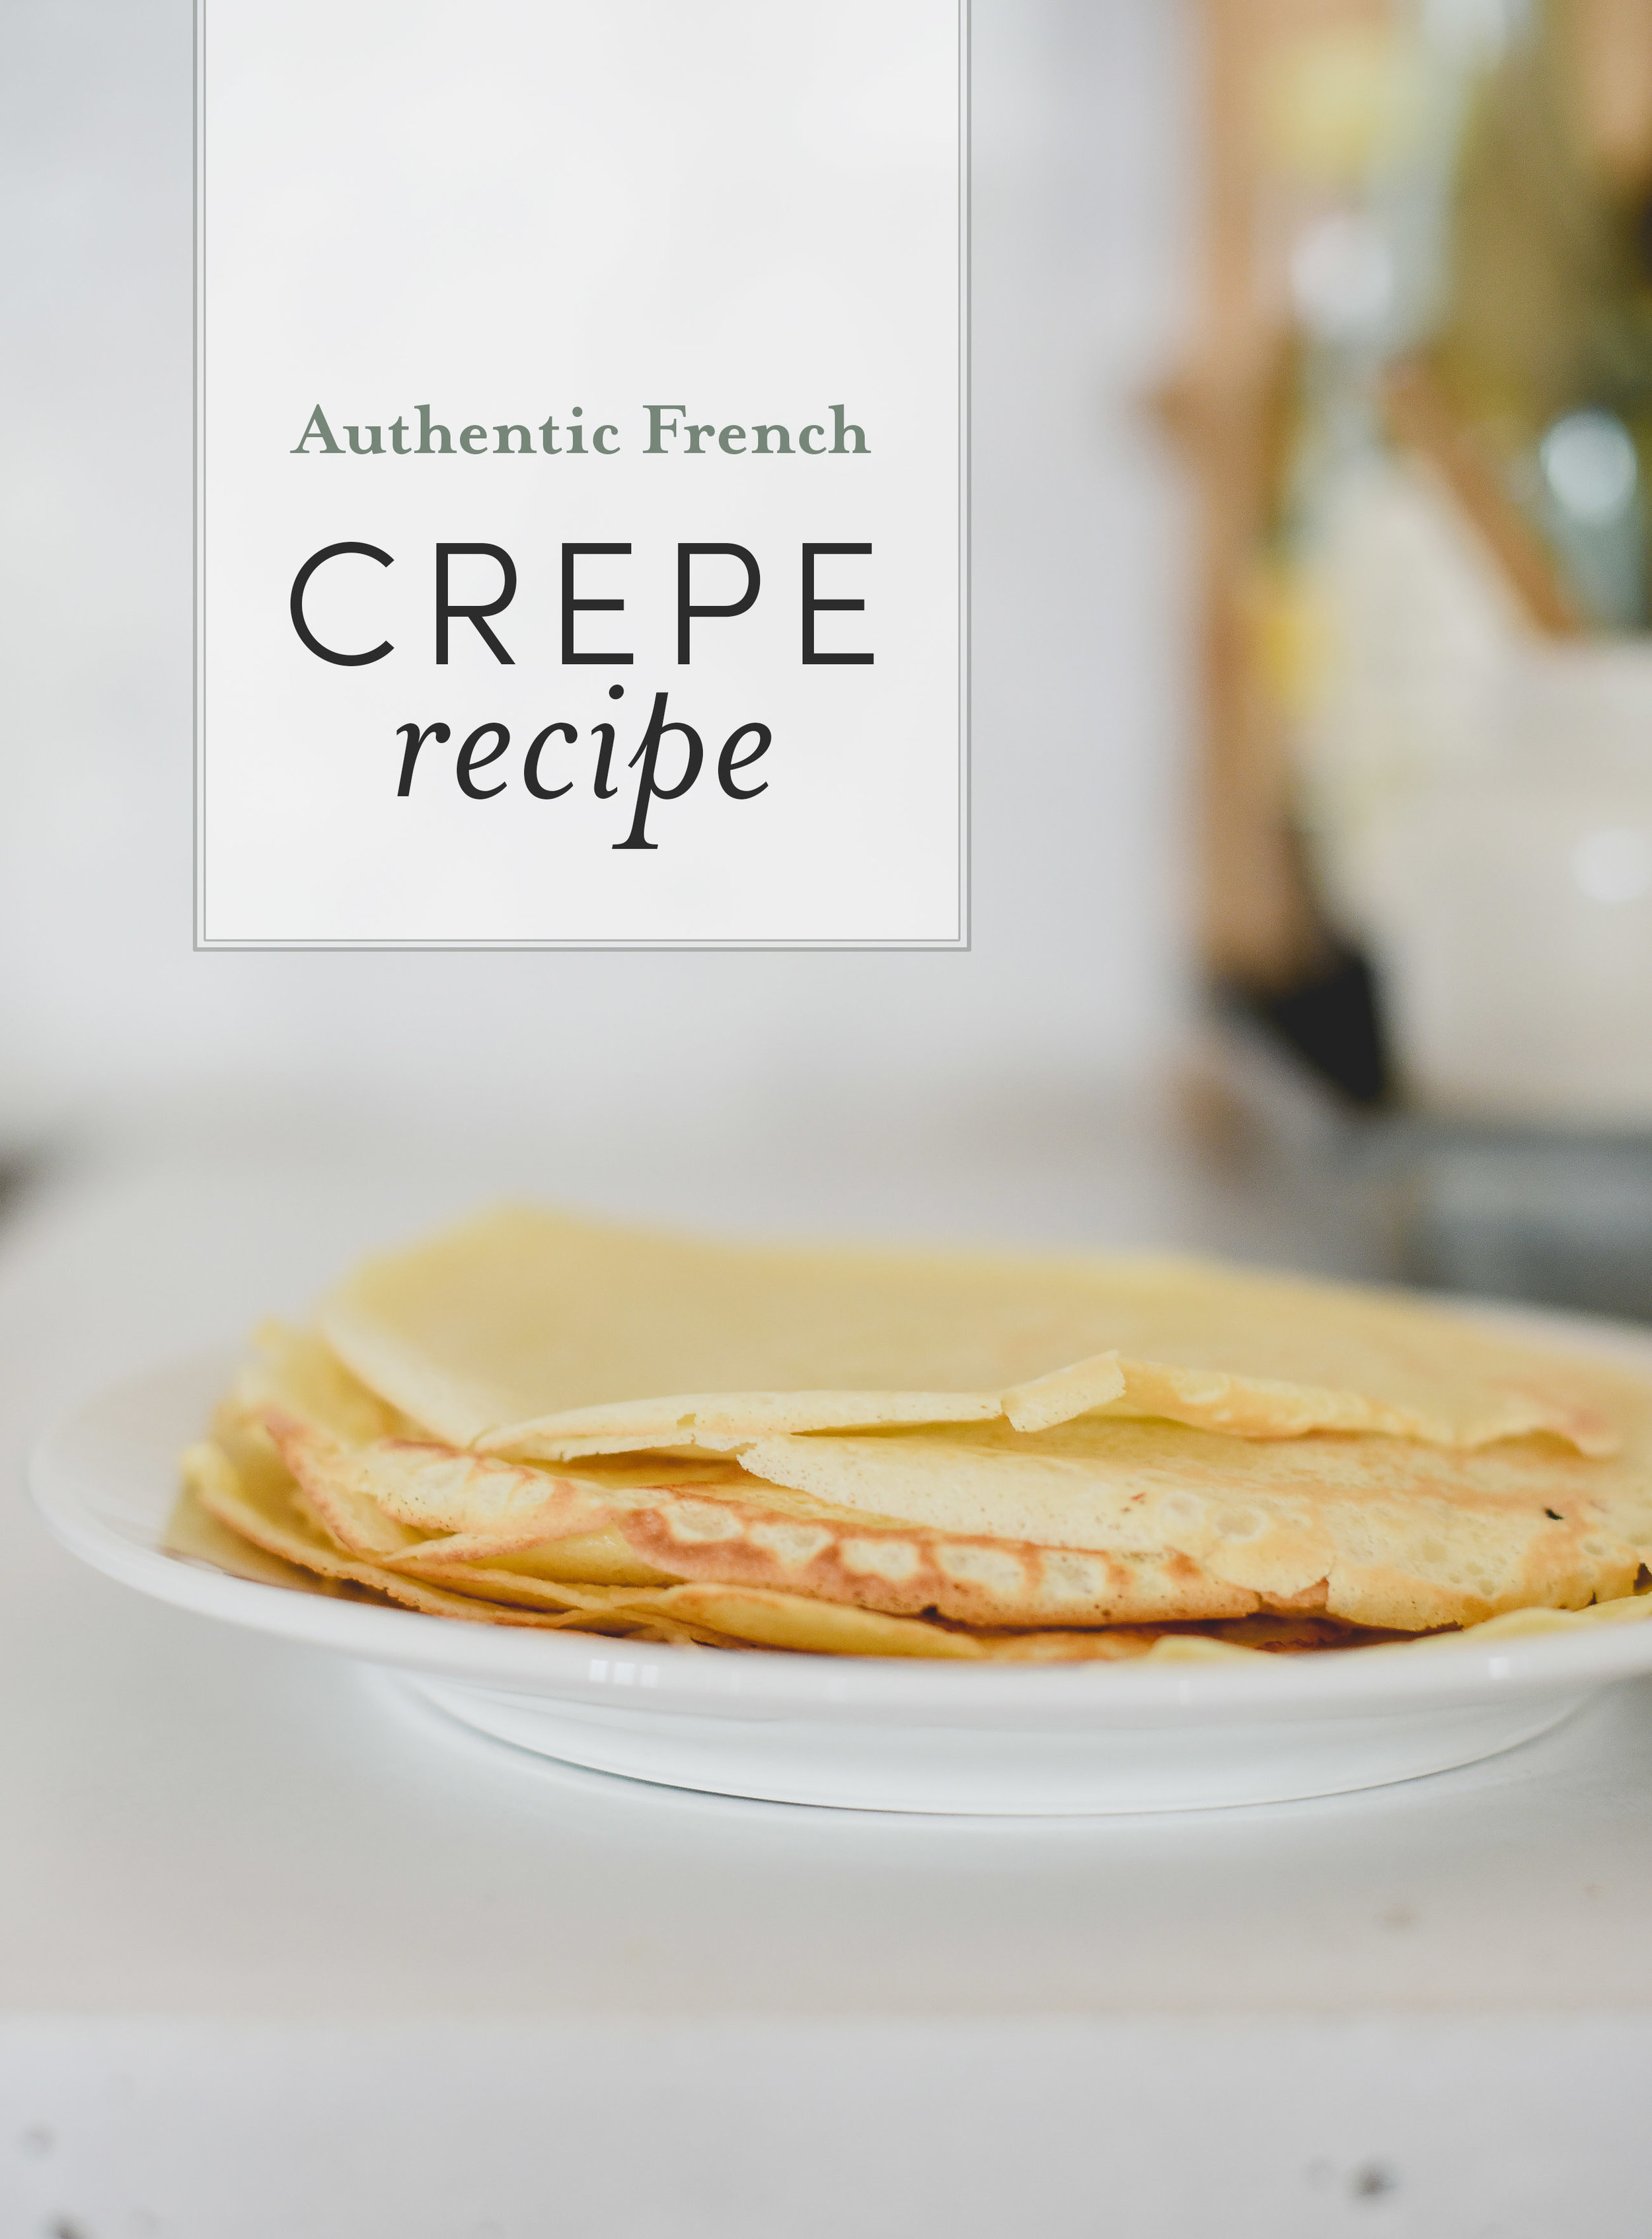 A delicious French crepe recipe for savory or sweet crepes   boxwoodavenue.com